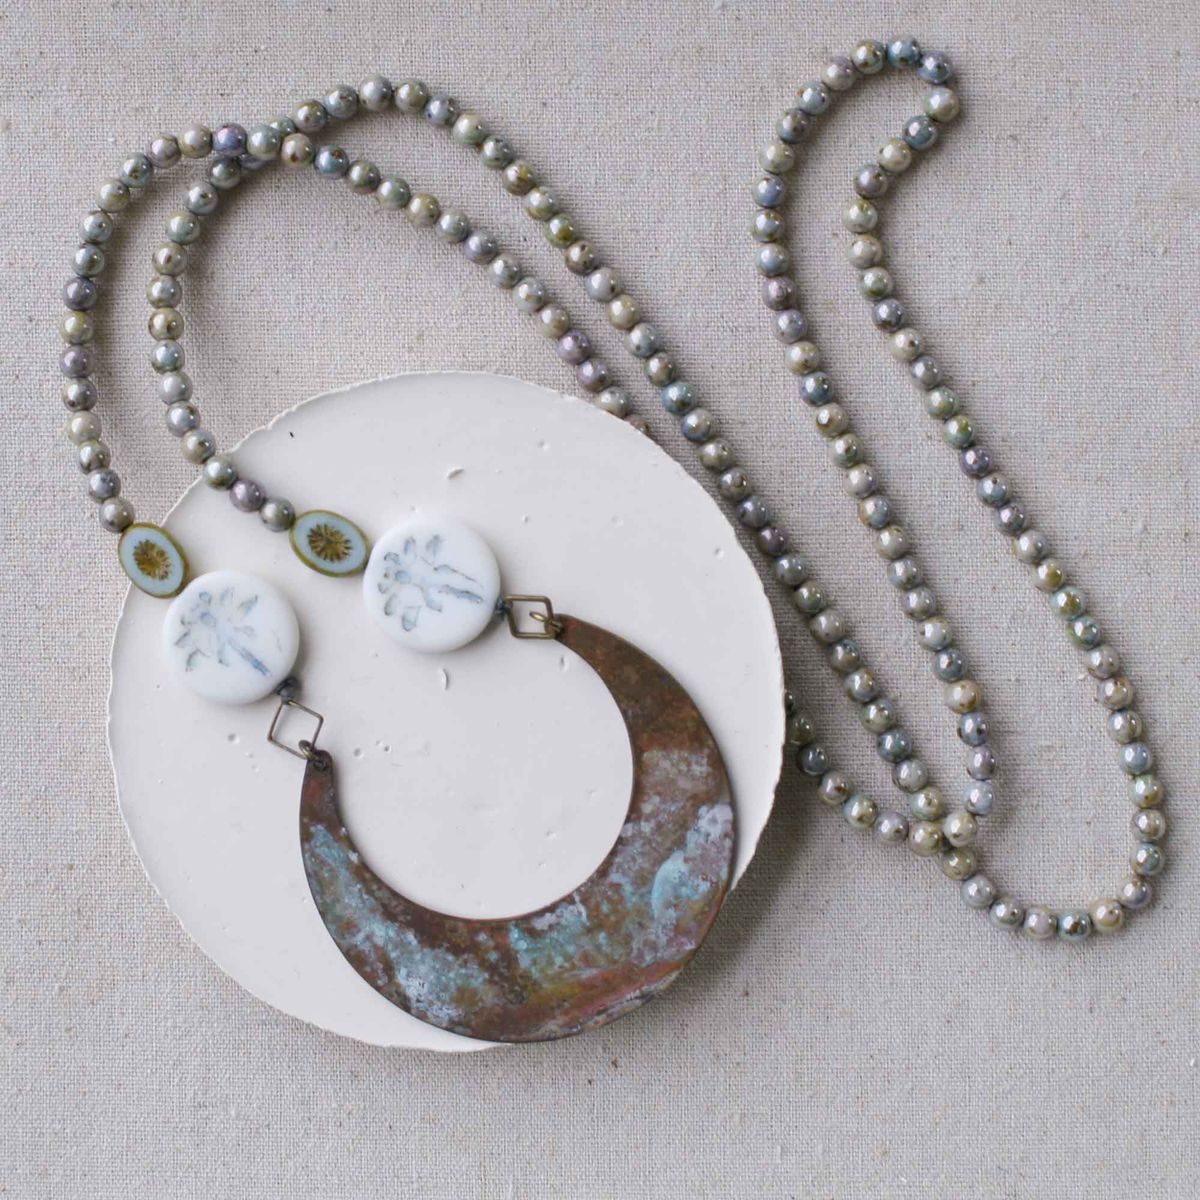 Beaded Patina Necklace with Dragonfly Beads - product image